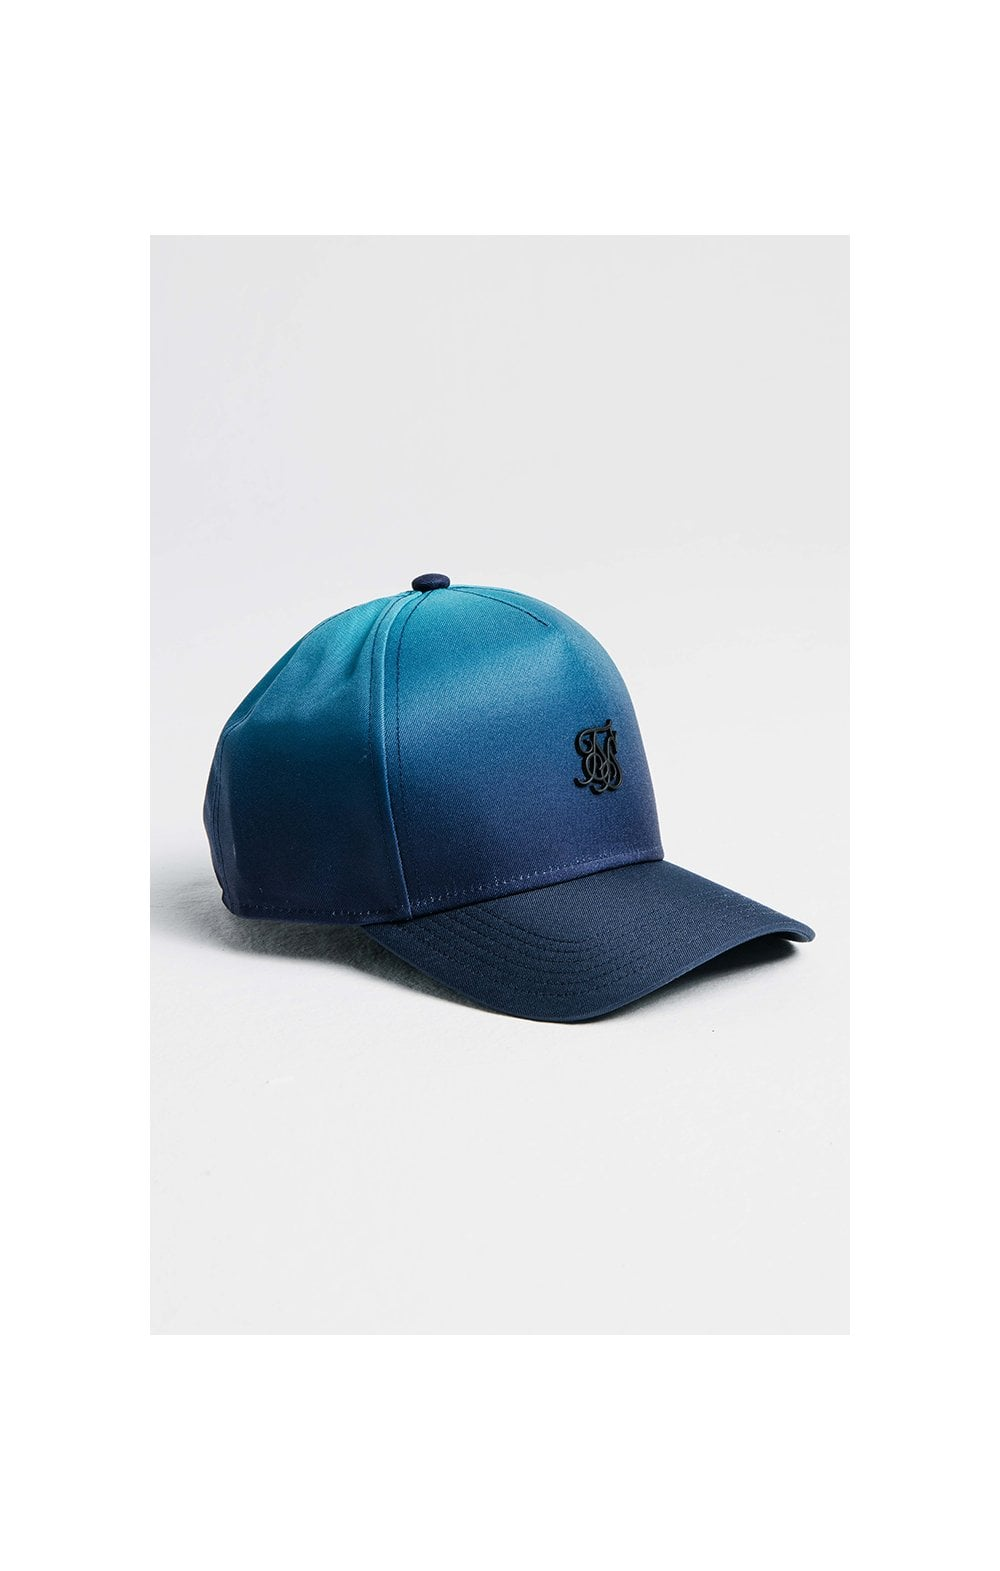 SikSilk Full Fade Trucker - Teal & Blue